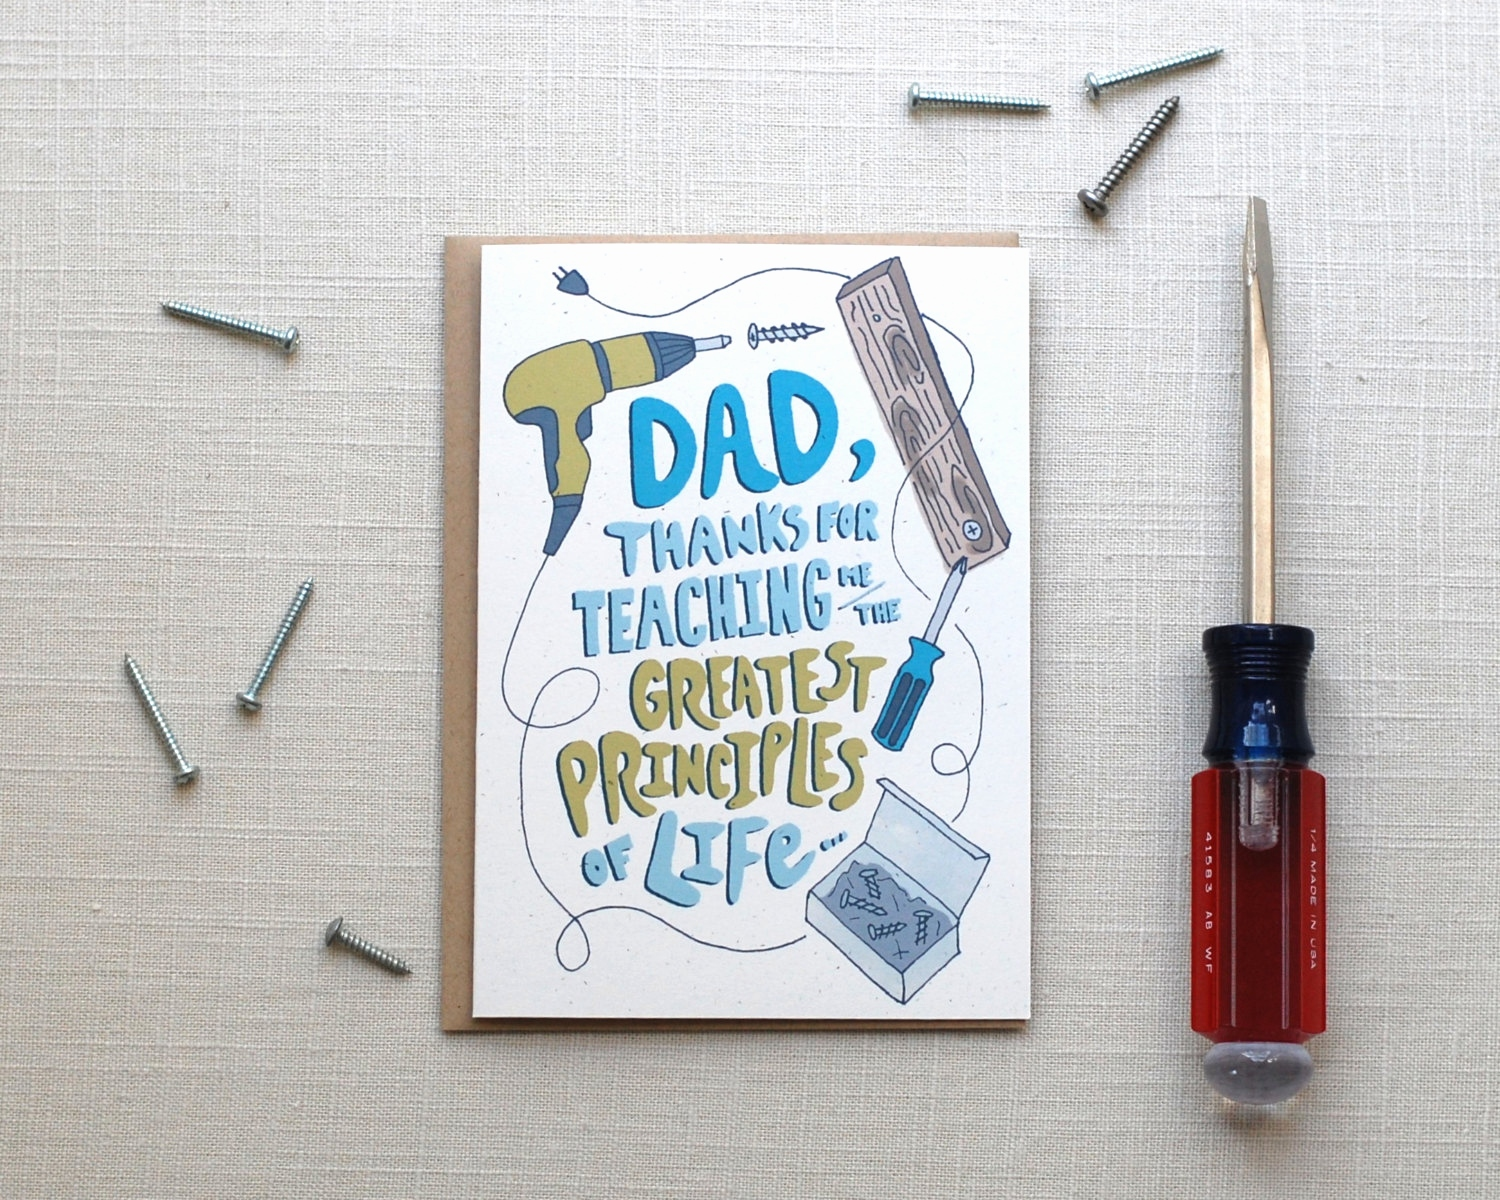 drawing ideas for dads birthday ; homemade-card-ideas-for-dads-birthday-fresh-cool-dad-birthday-cards-image-collections-free-birthday-cards-of-homemade-card-ideas-for-dads-birthday